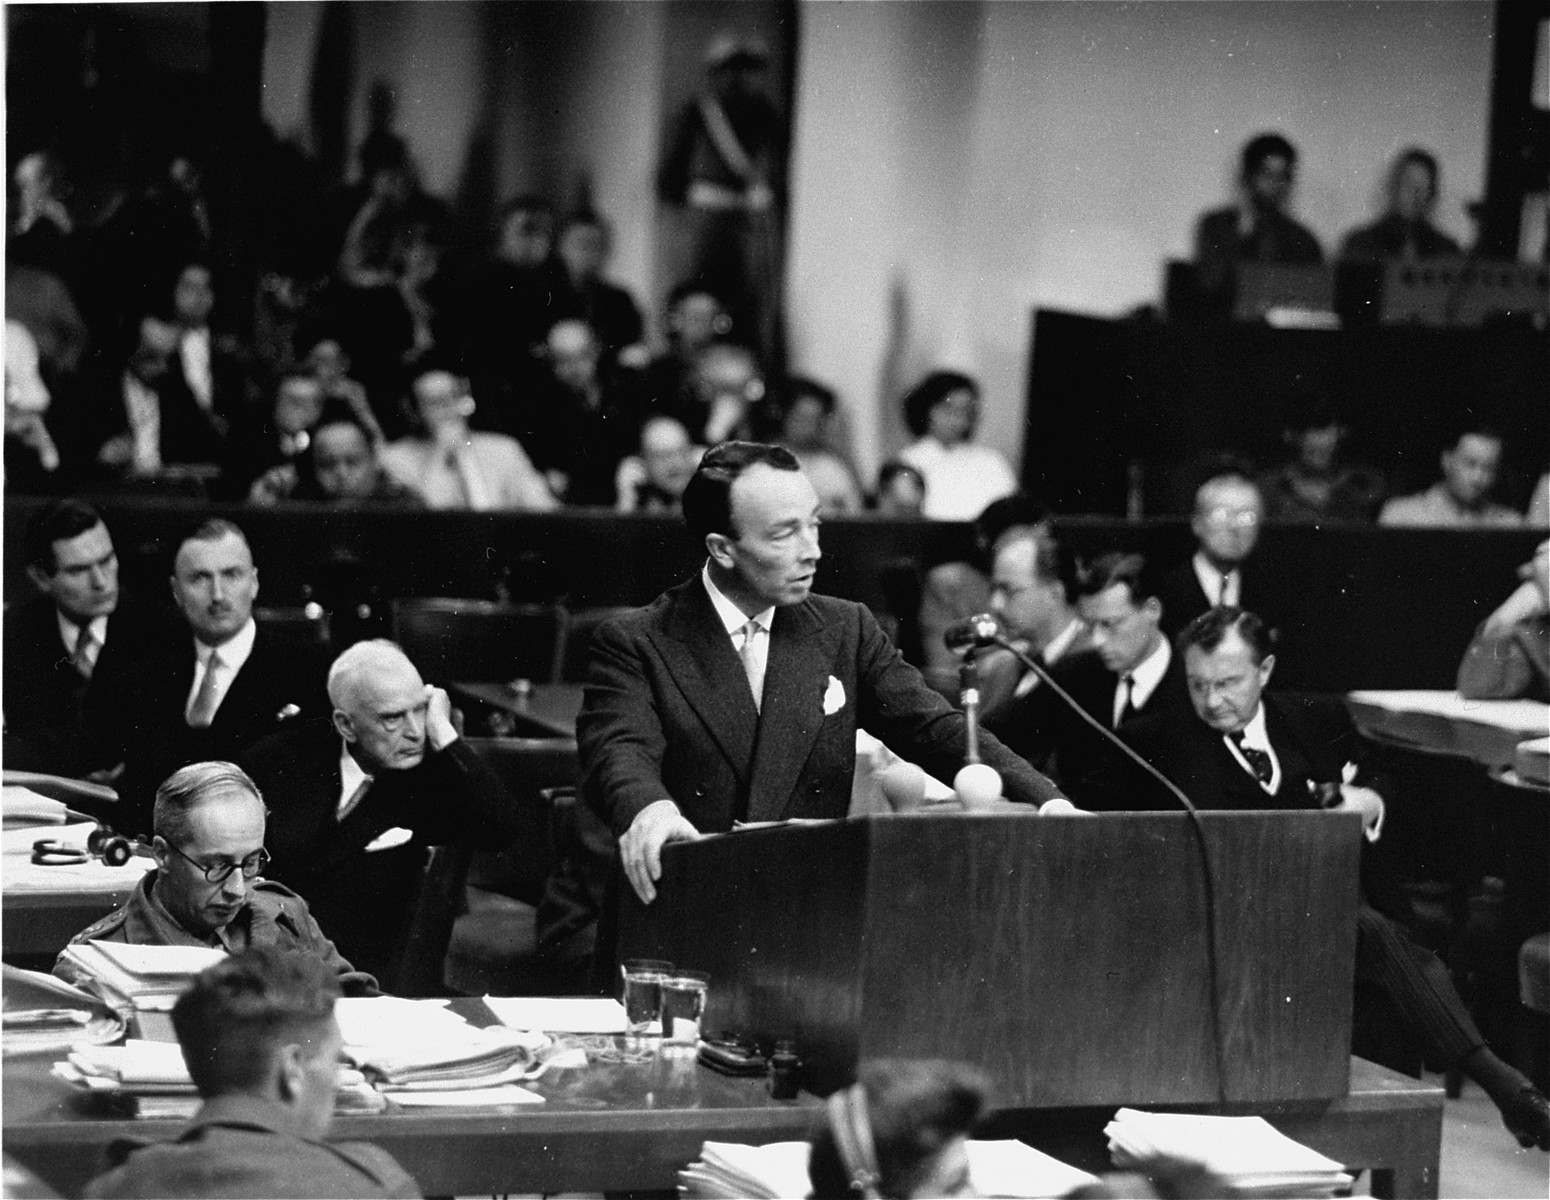 Chief British prosecutor Sir Hartley Shawcross speaks at the International Military Tribunal trial of war criminals at Nuremberg.